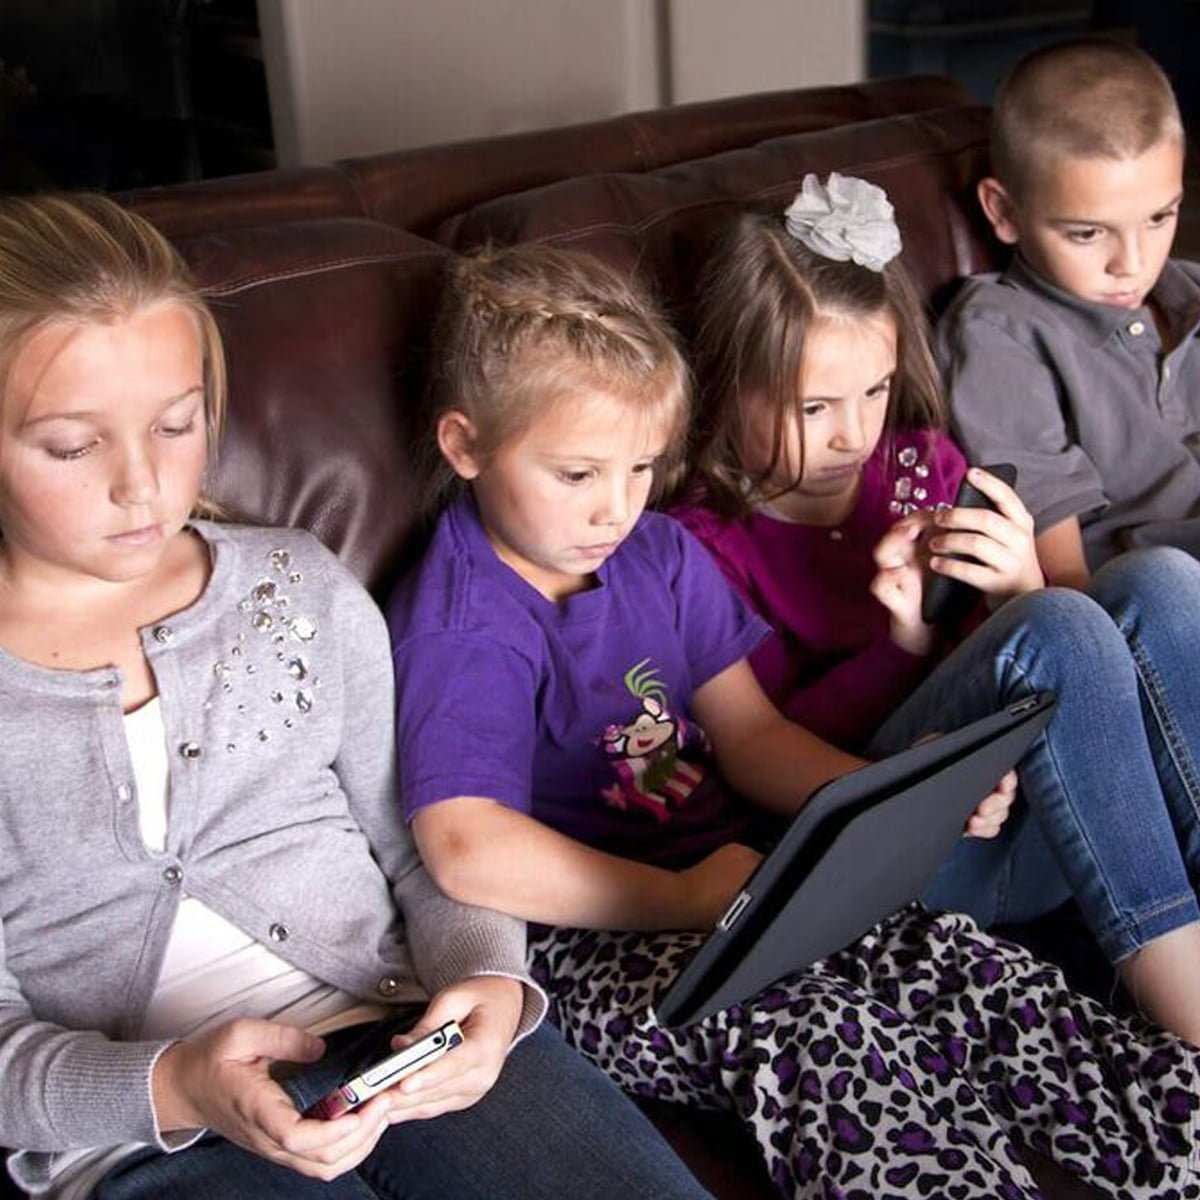 Four kids spending too much screen time on their devices